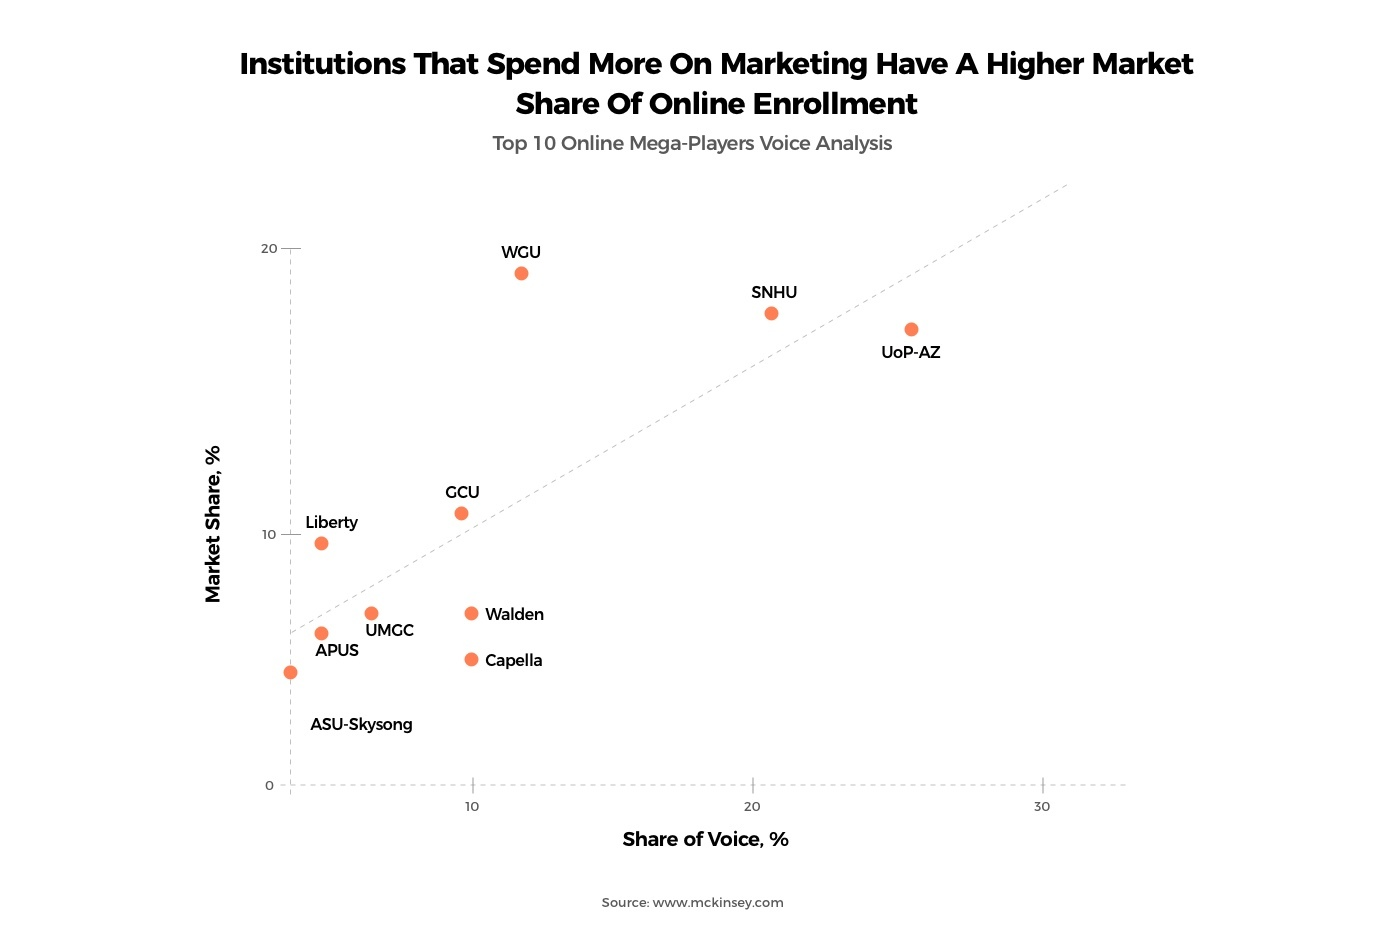 A report mentioning higher spending on marketing leads to higher enrolment